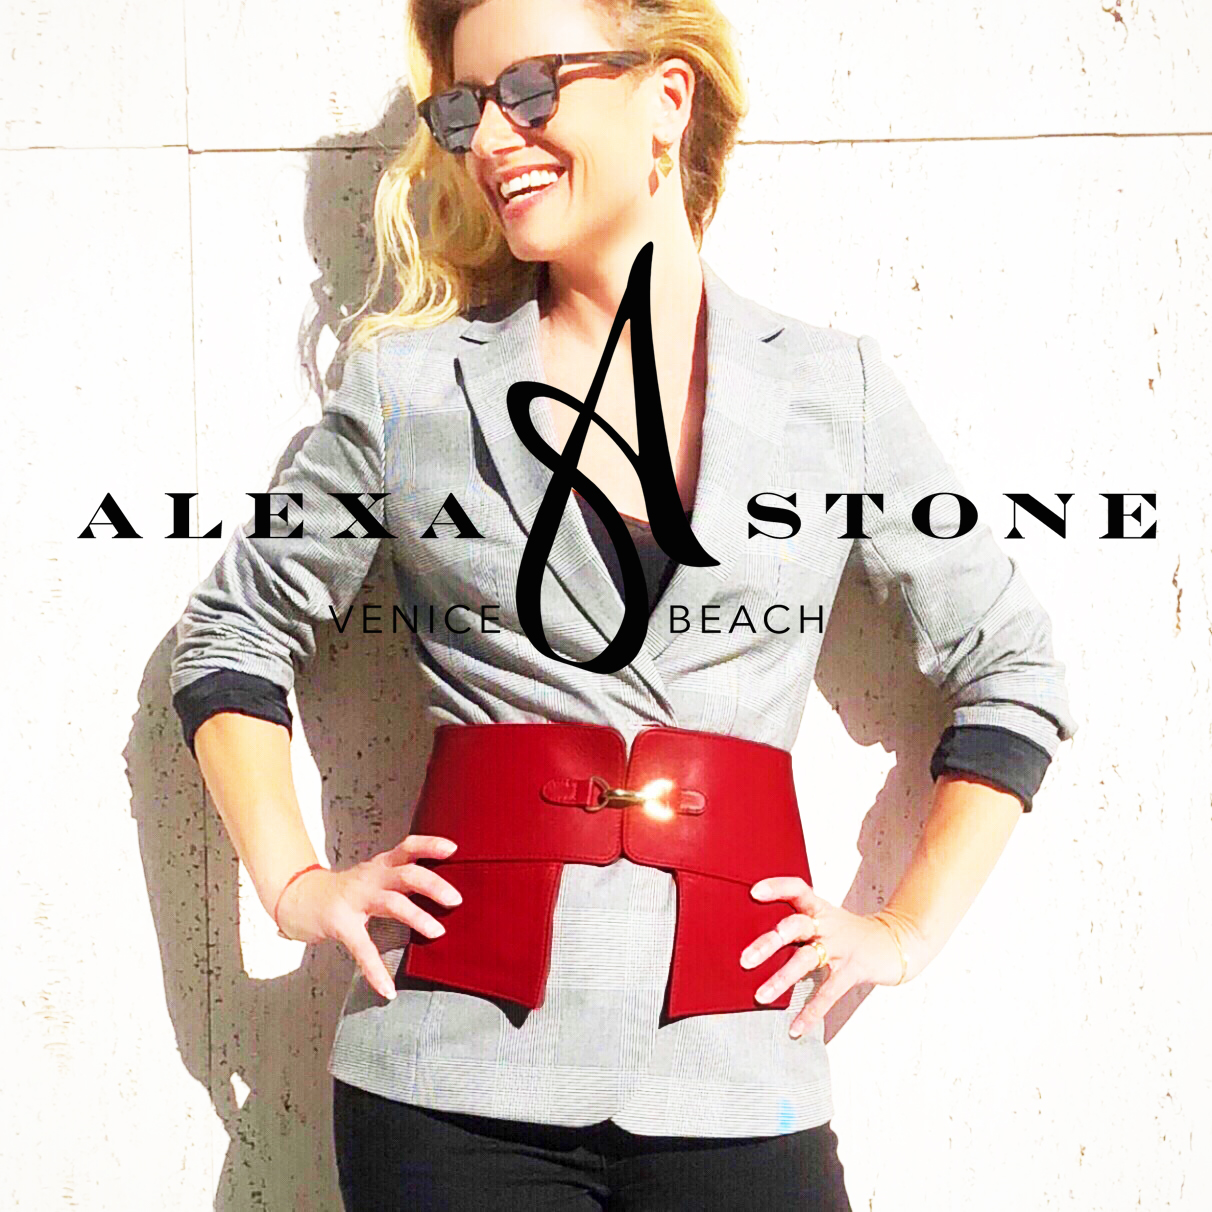 Alexa Stone Pocketed Belts